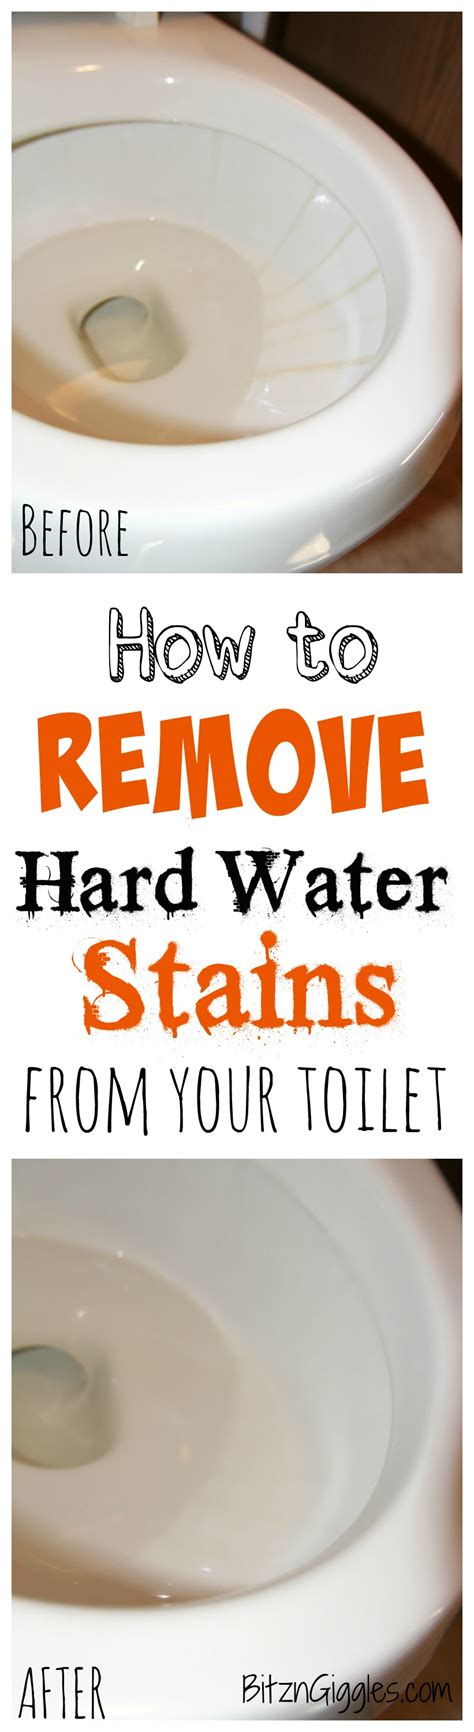 Easiest Way To Clean Bathtub How To Remove Hard Water Stains From Your Toilet